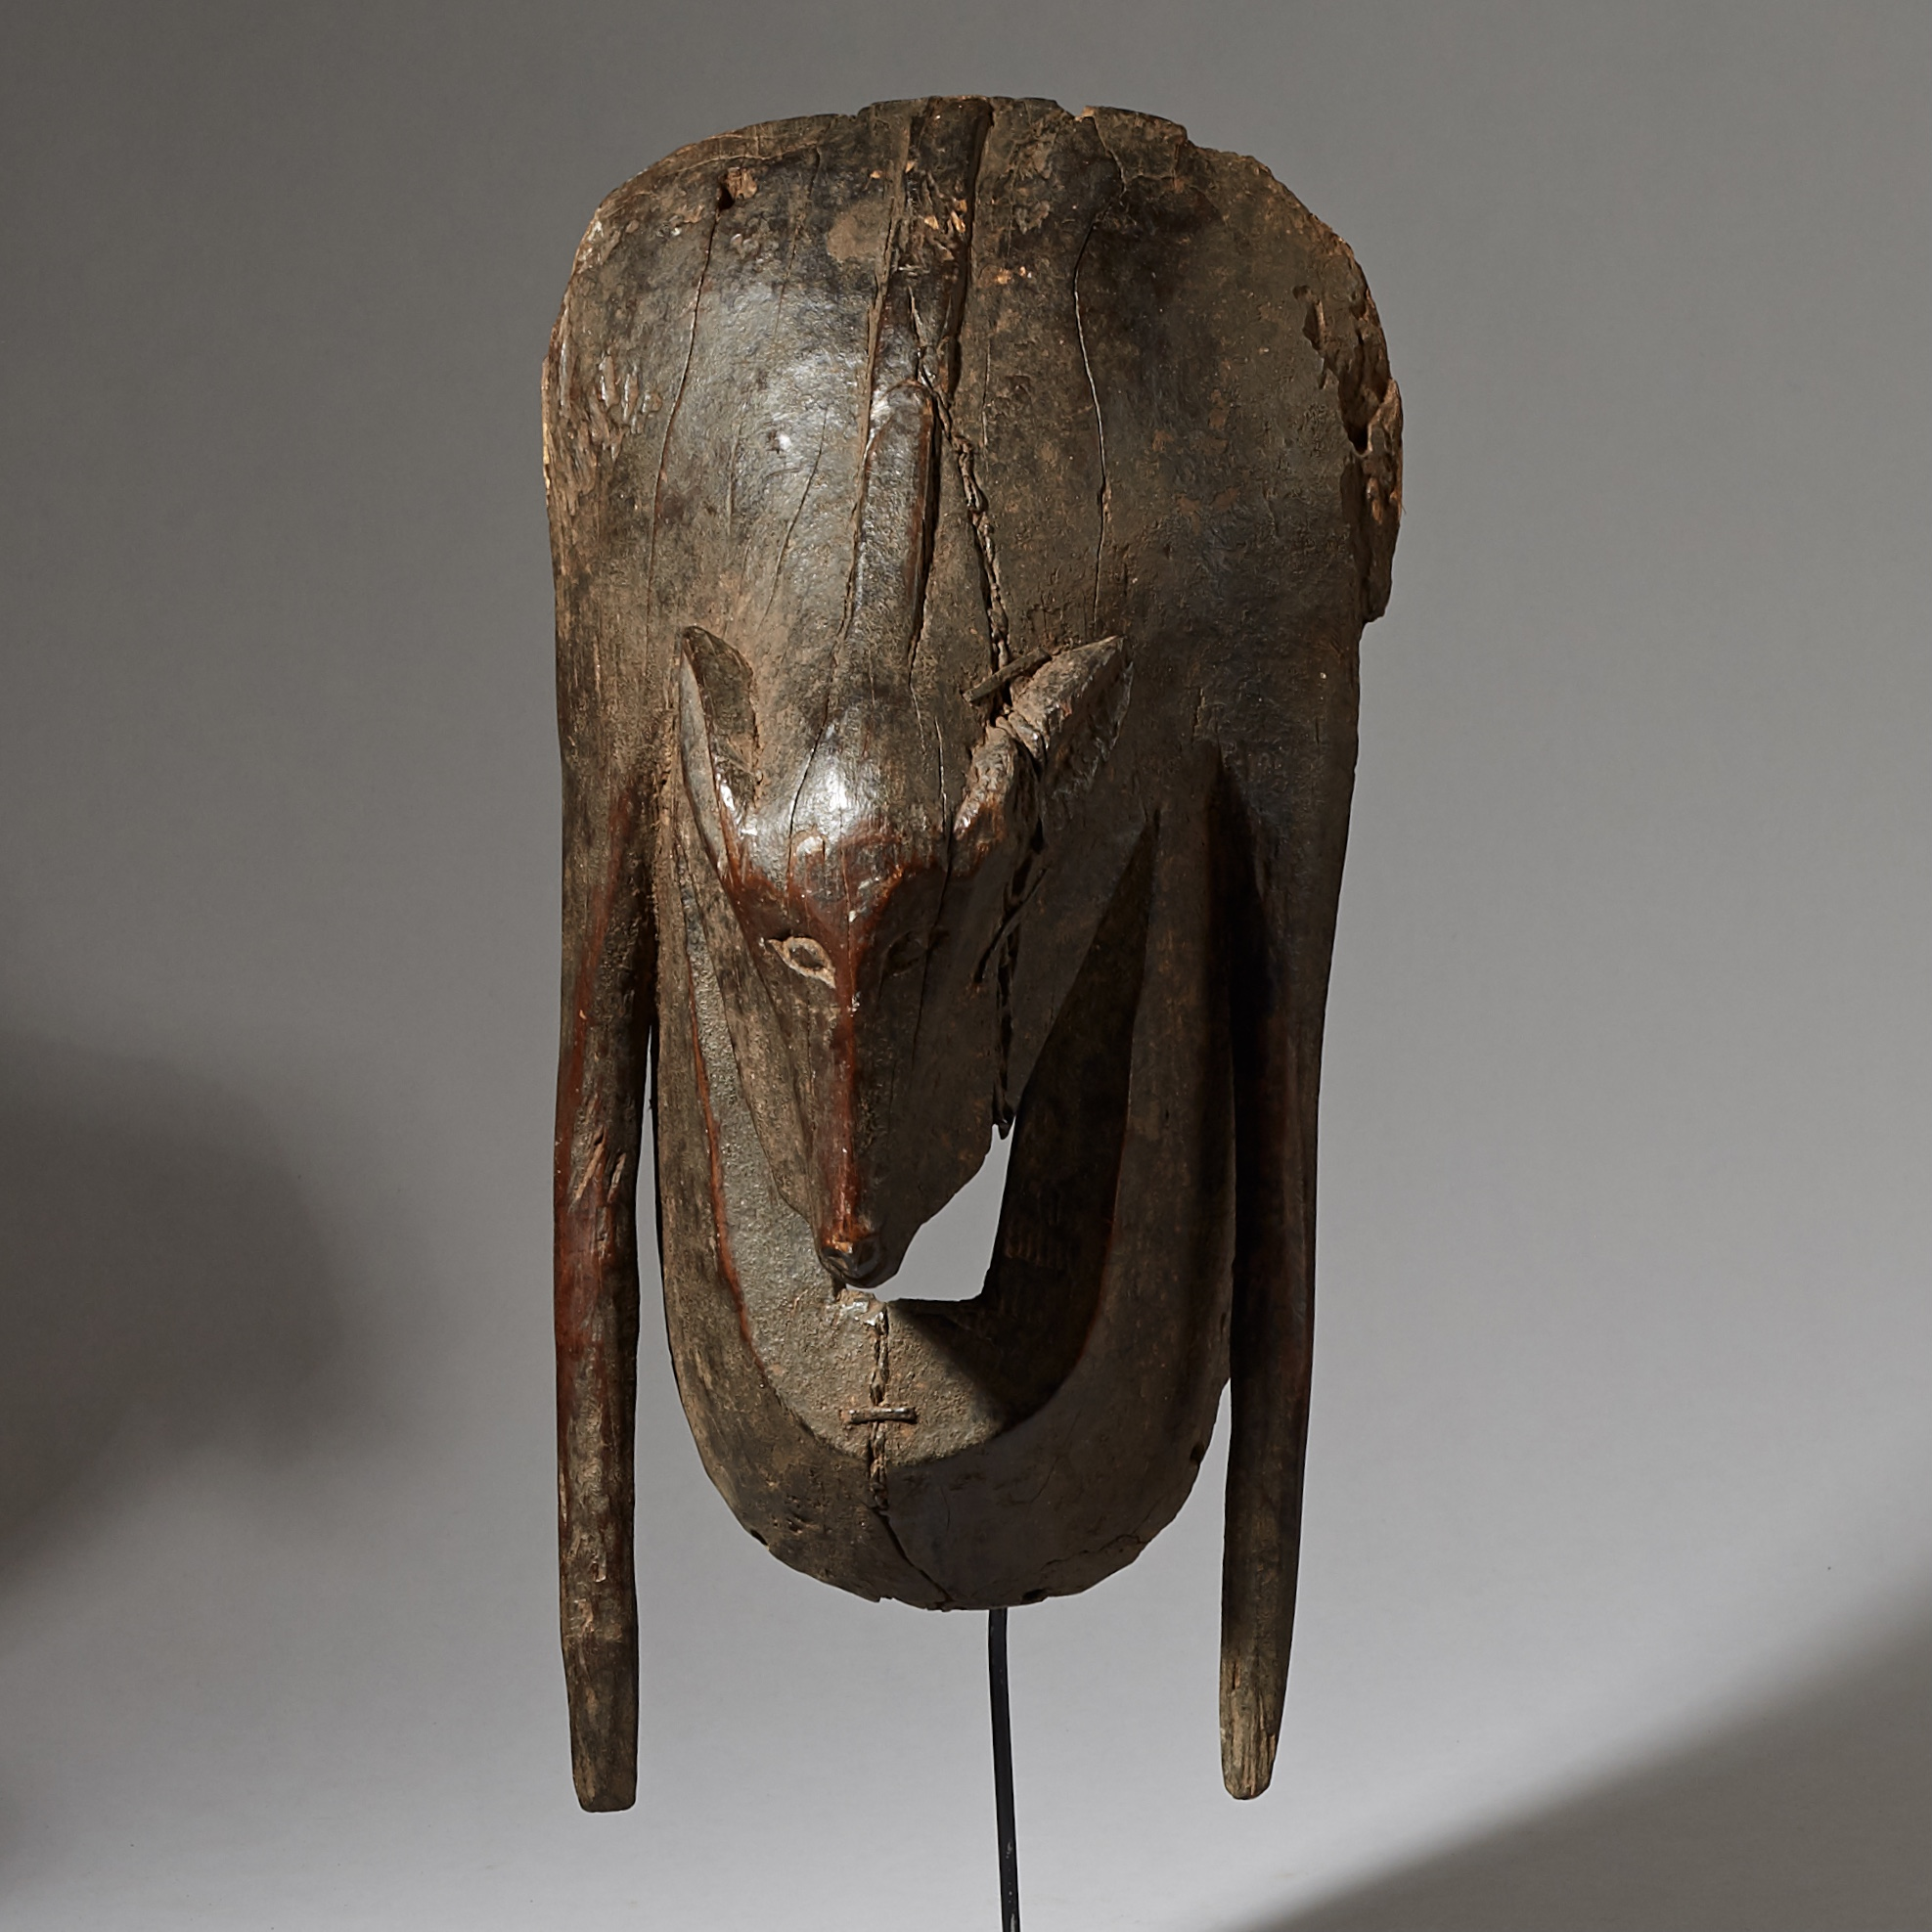 A MORPHING BAT MASK FROM THE YAURE TRIBE, IVORY COAST ( No 2875 )